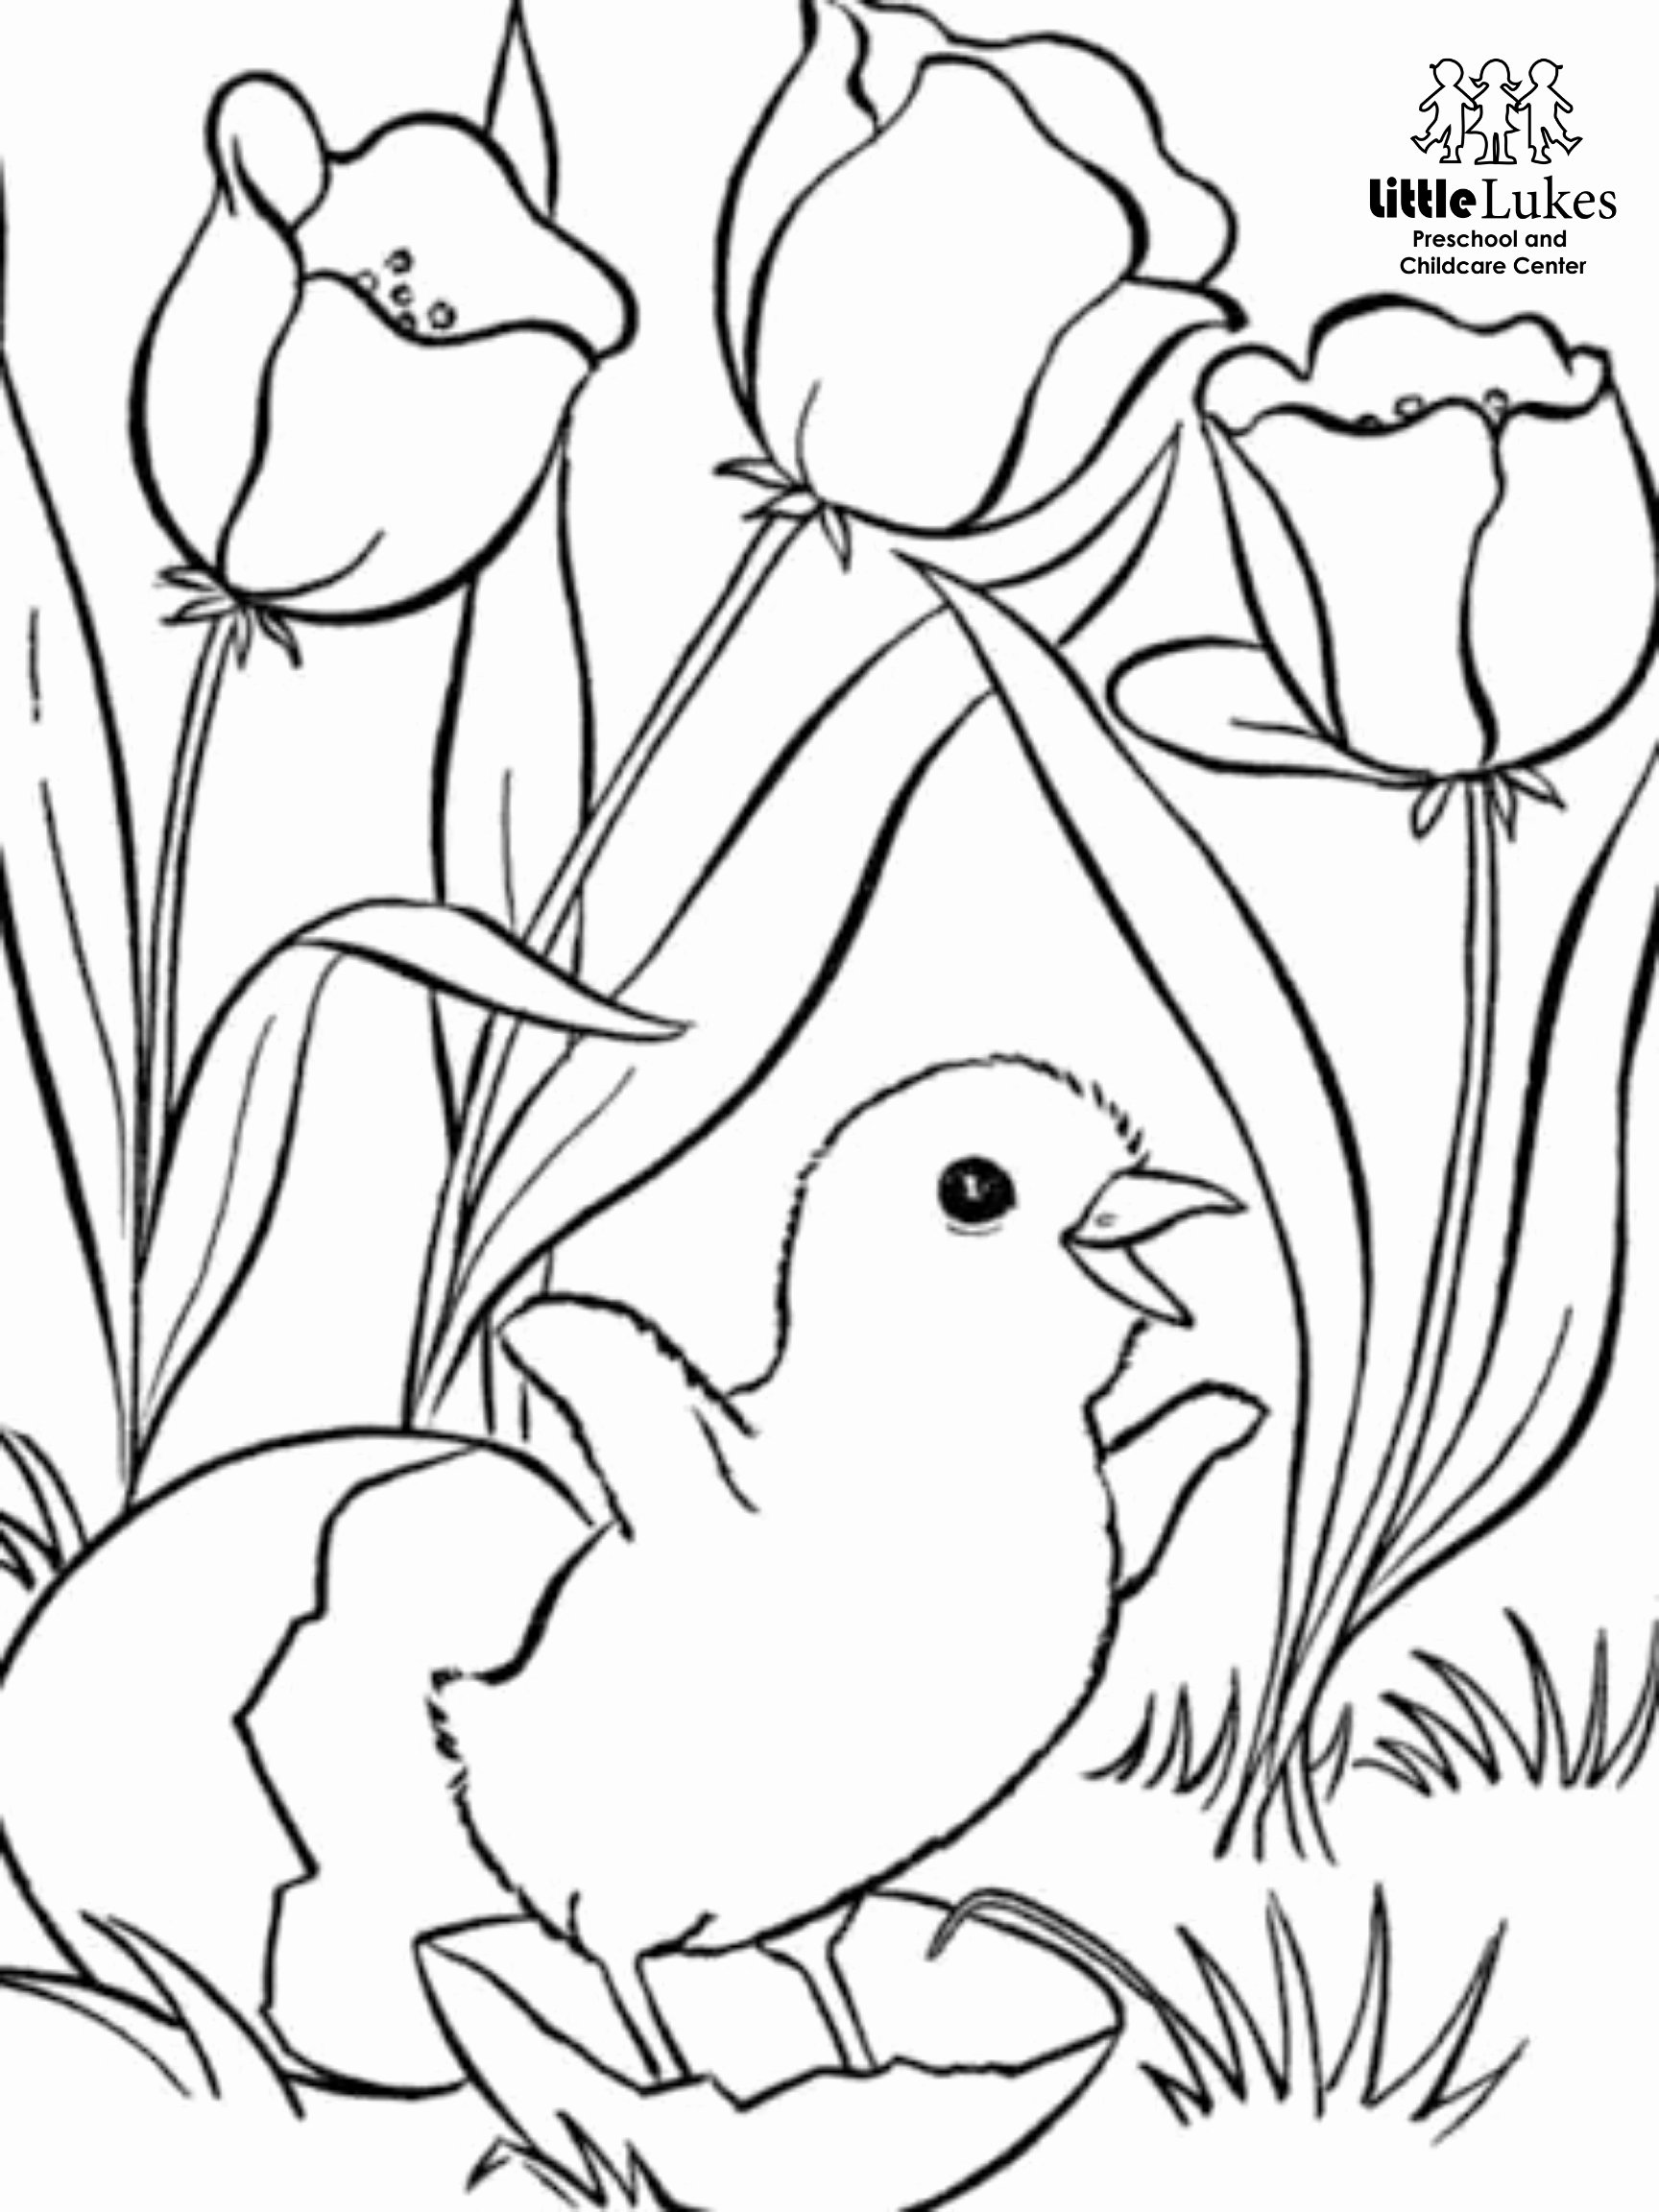 Spring Coloring Worksheets for Preschoolers Unique Free Spring Coloring Pages Little Lukes Preschool and